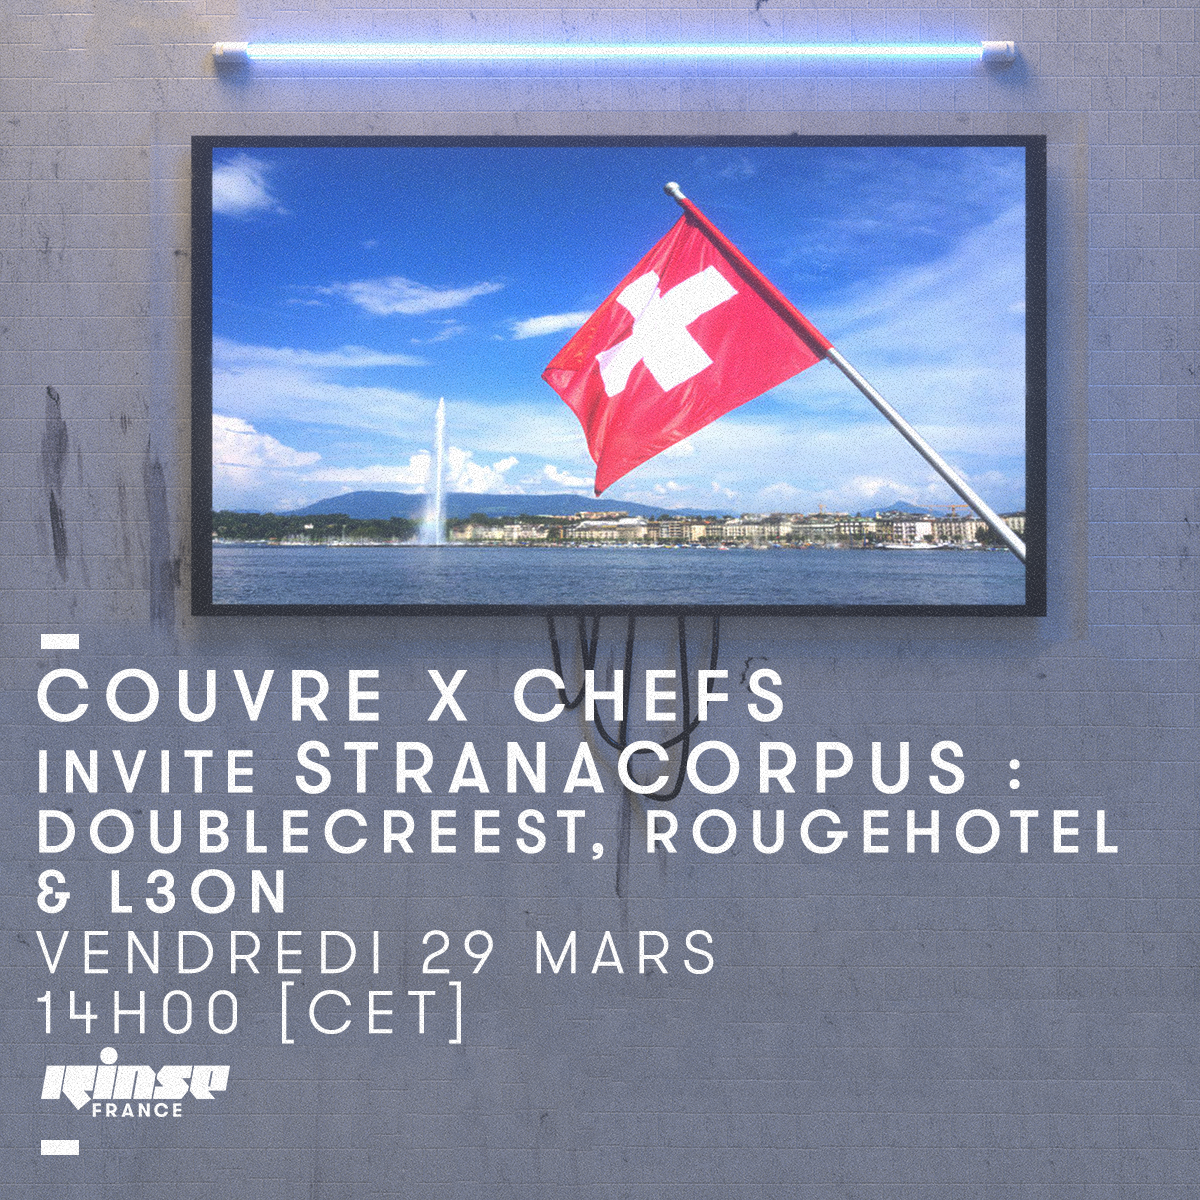 couvre x chefs stranacorpus rinse france